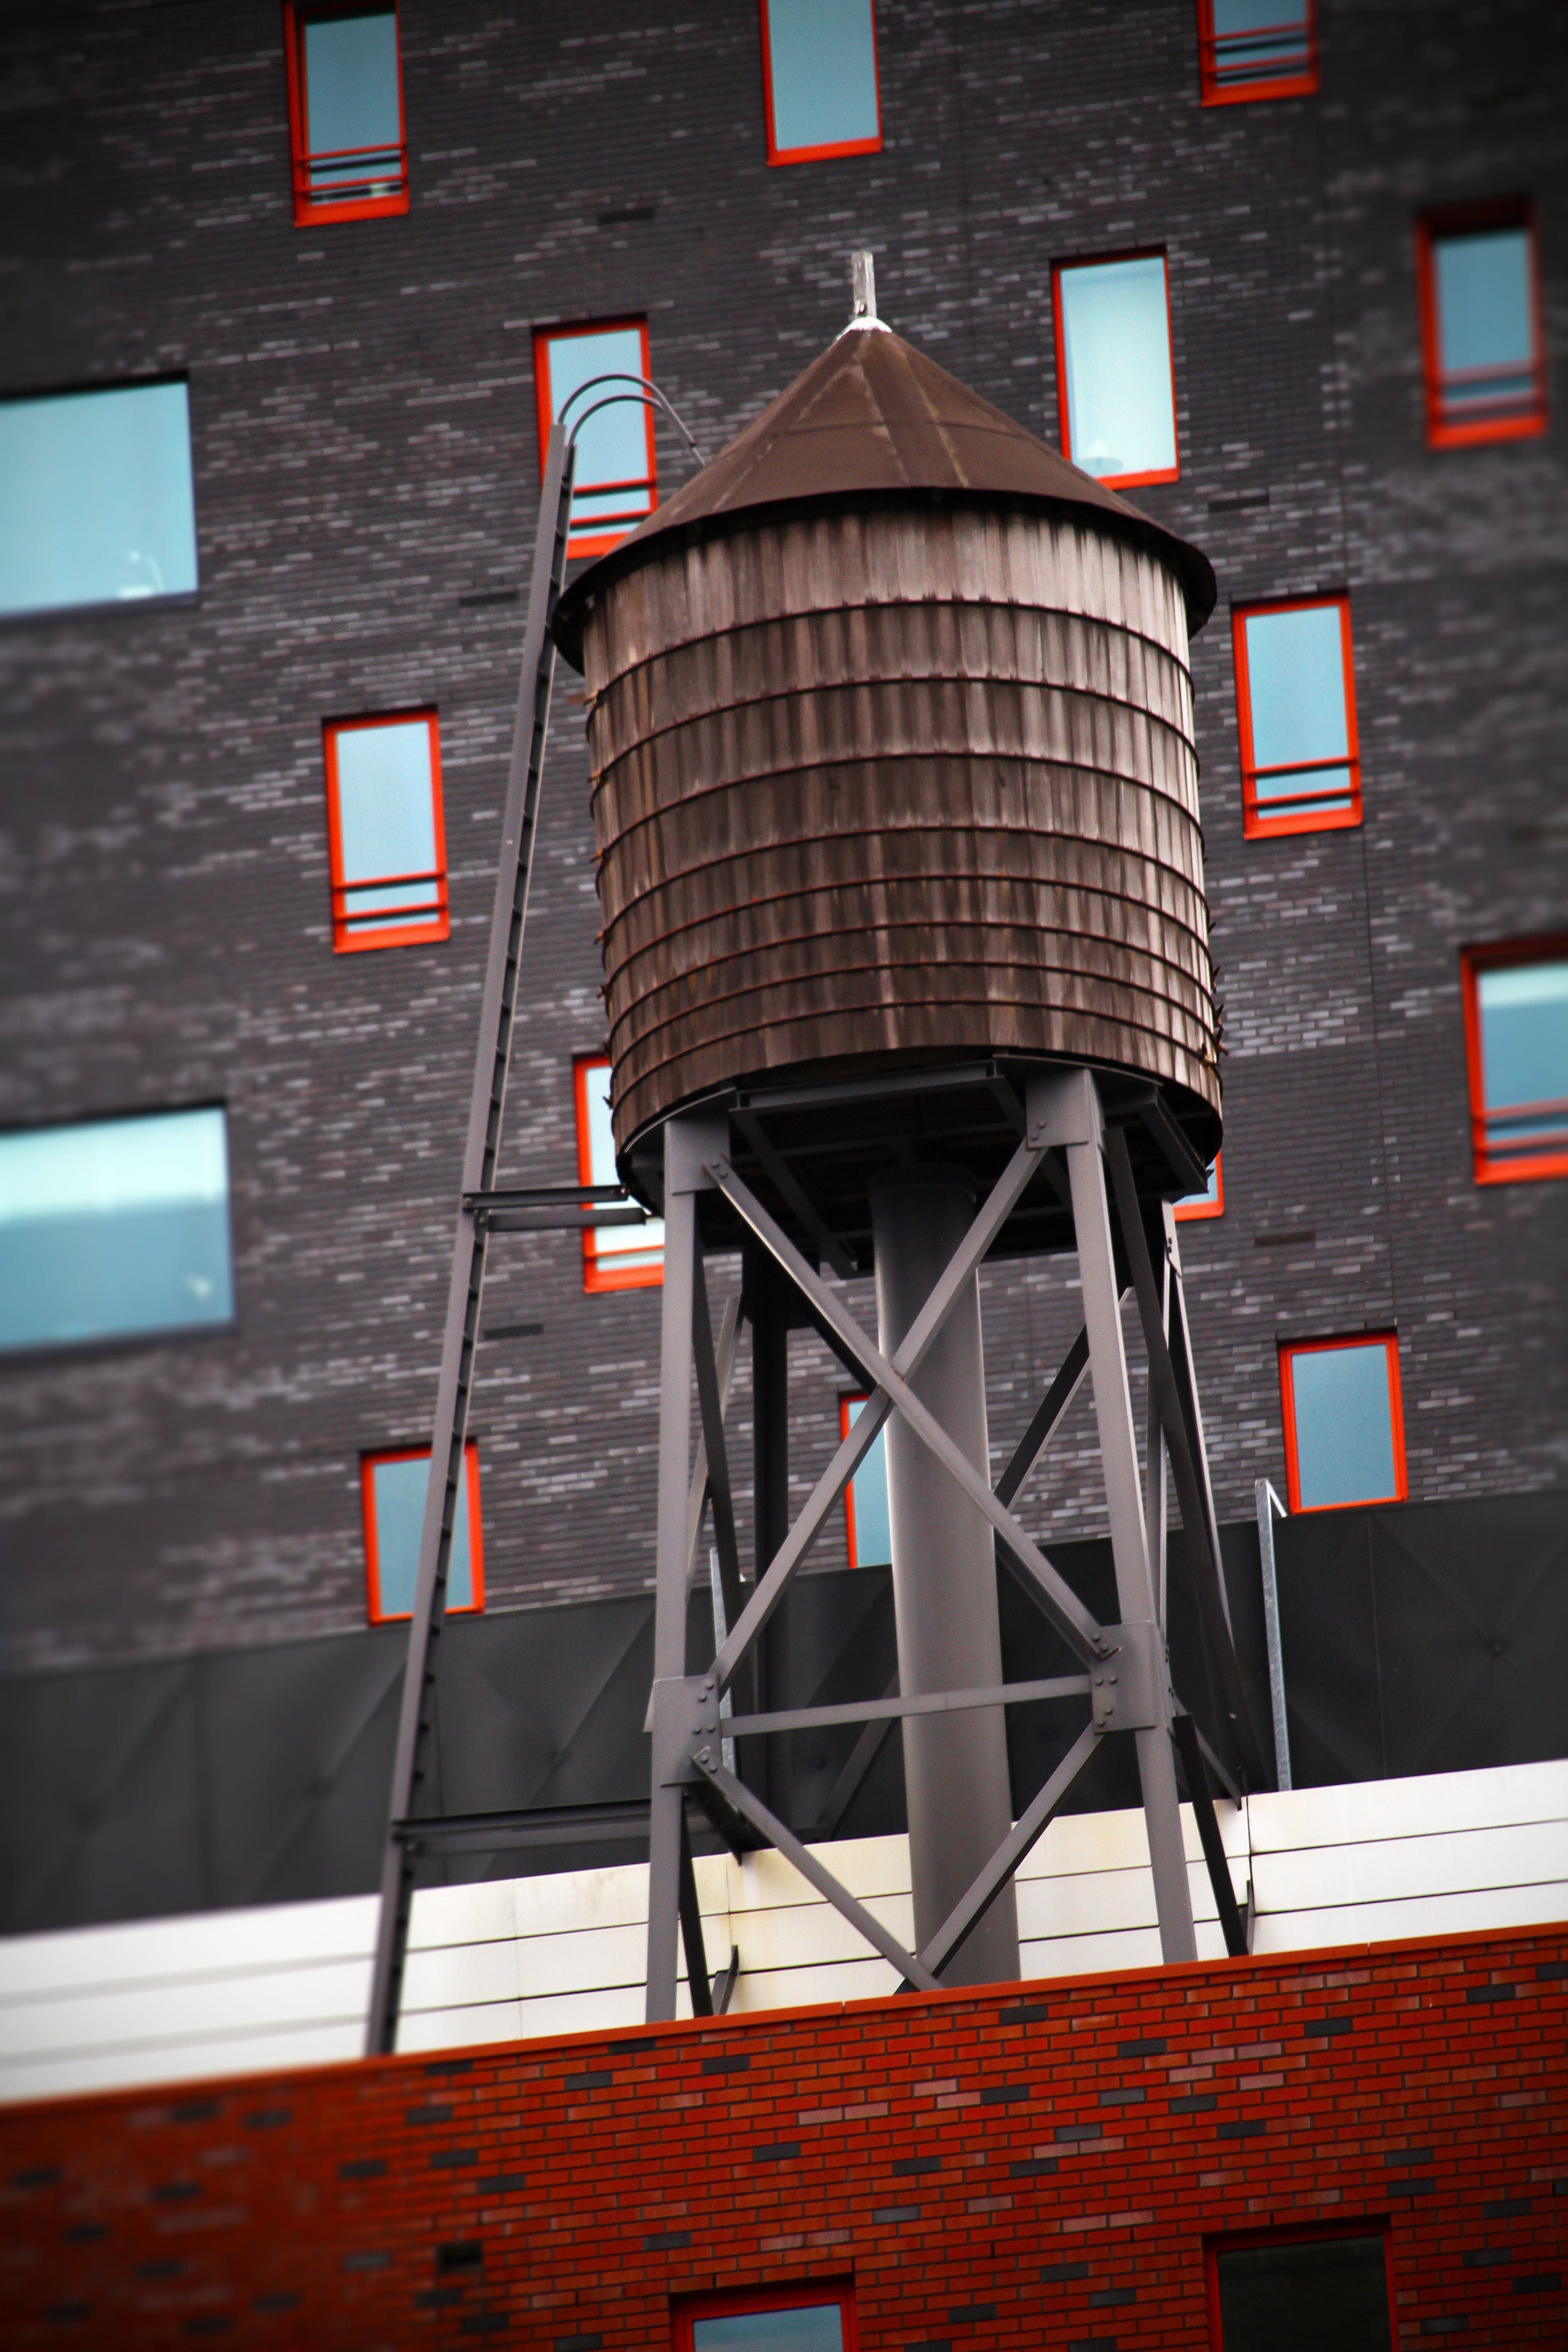 Brown Water Tower on Rooftop